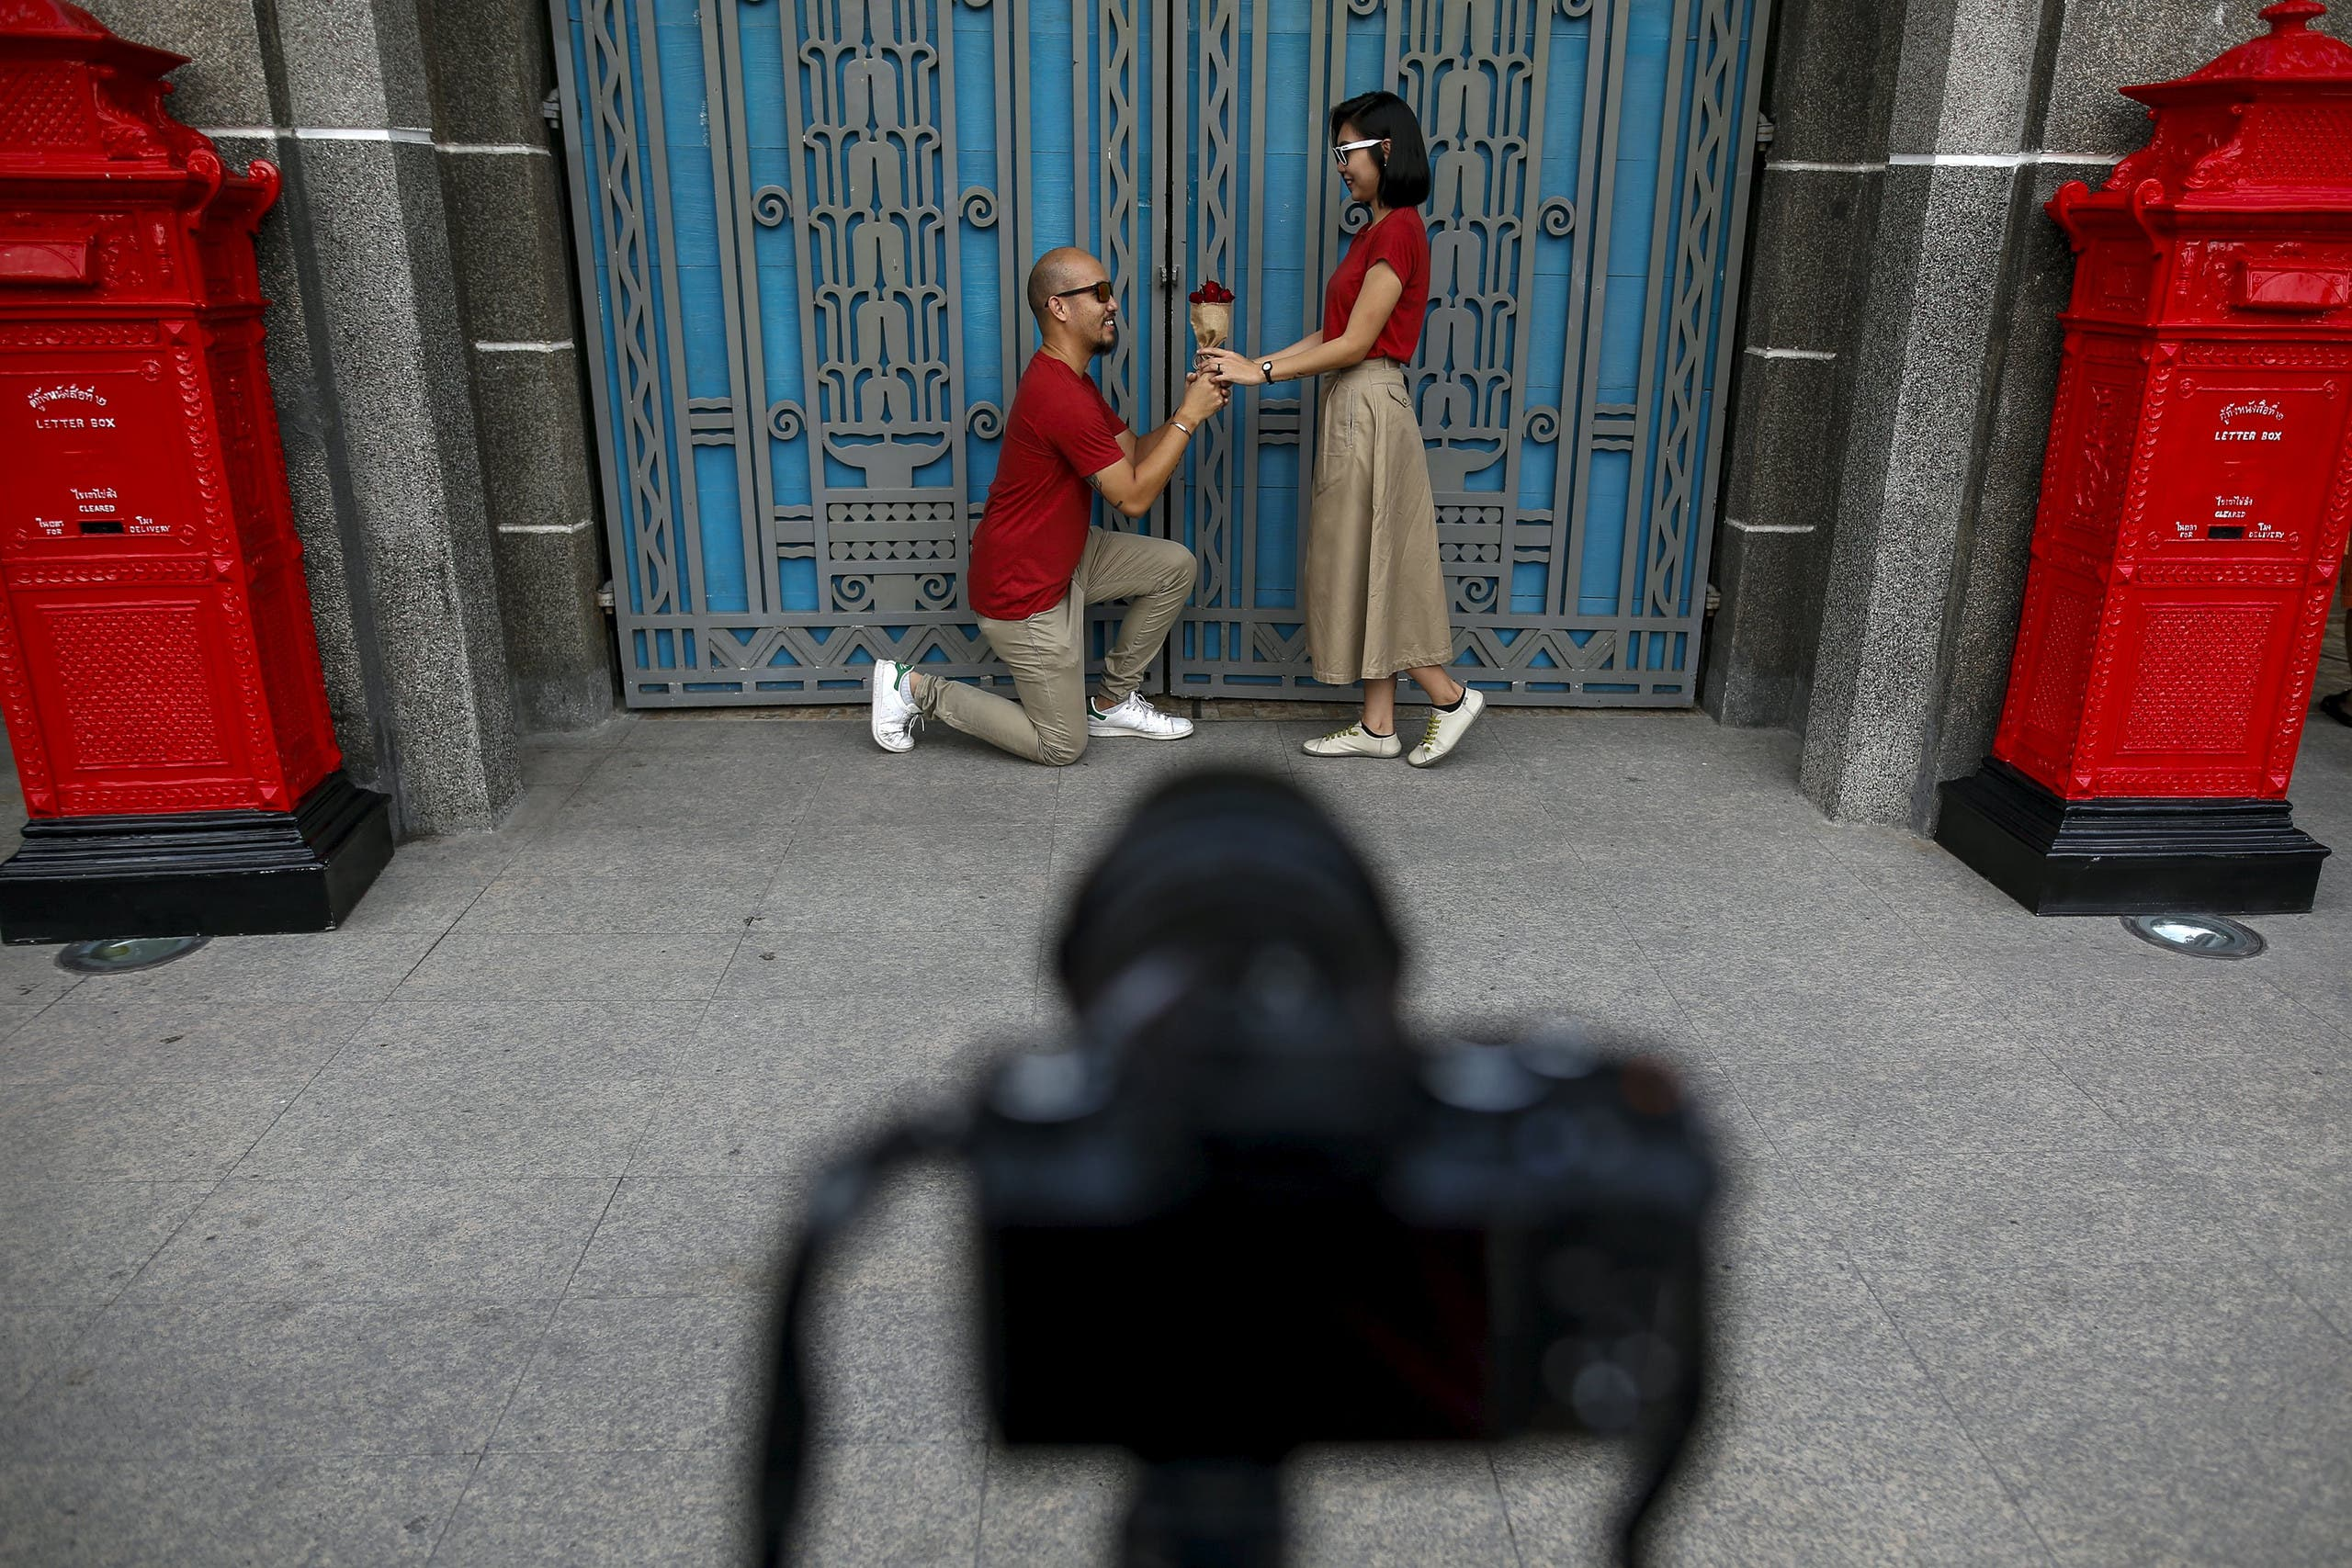 A couple take a selfie during a Valentine's Day celebration at the Bangrak district in Bangkok, Thailand, February 14, 2016. (Reuters)